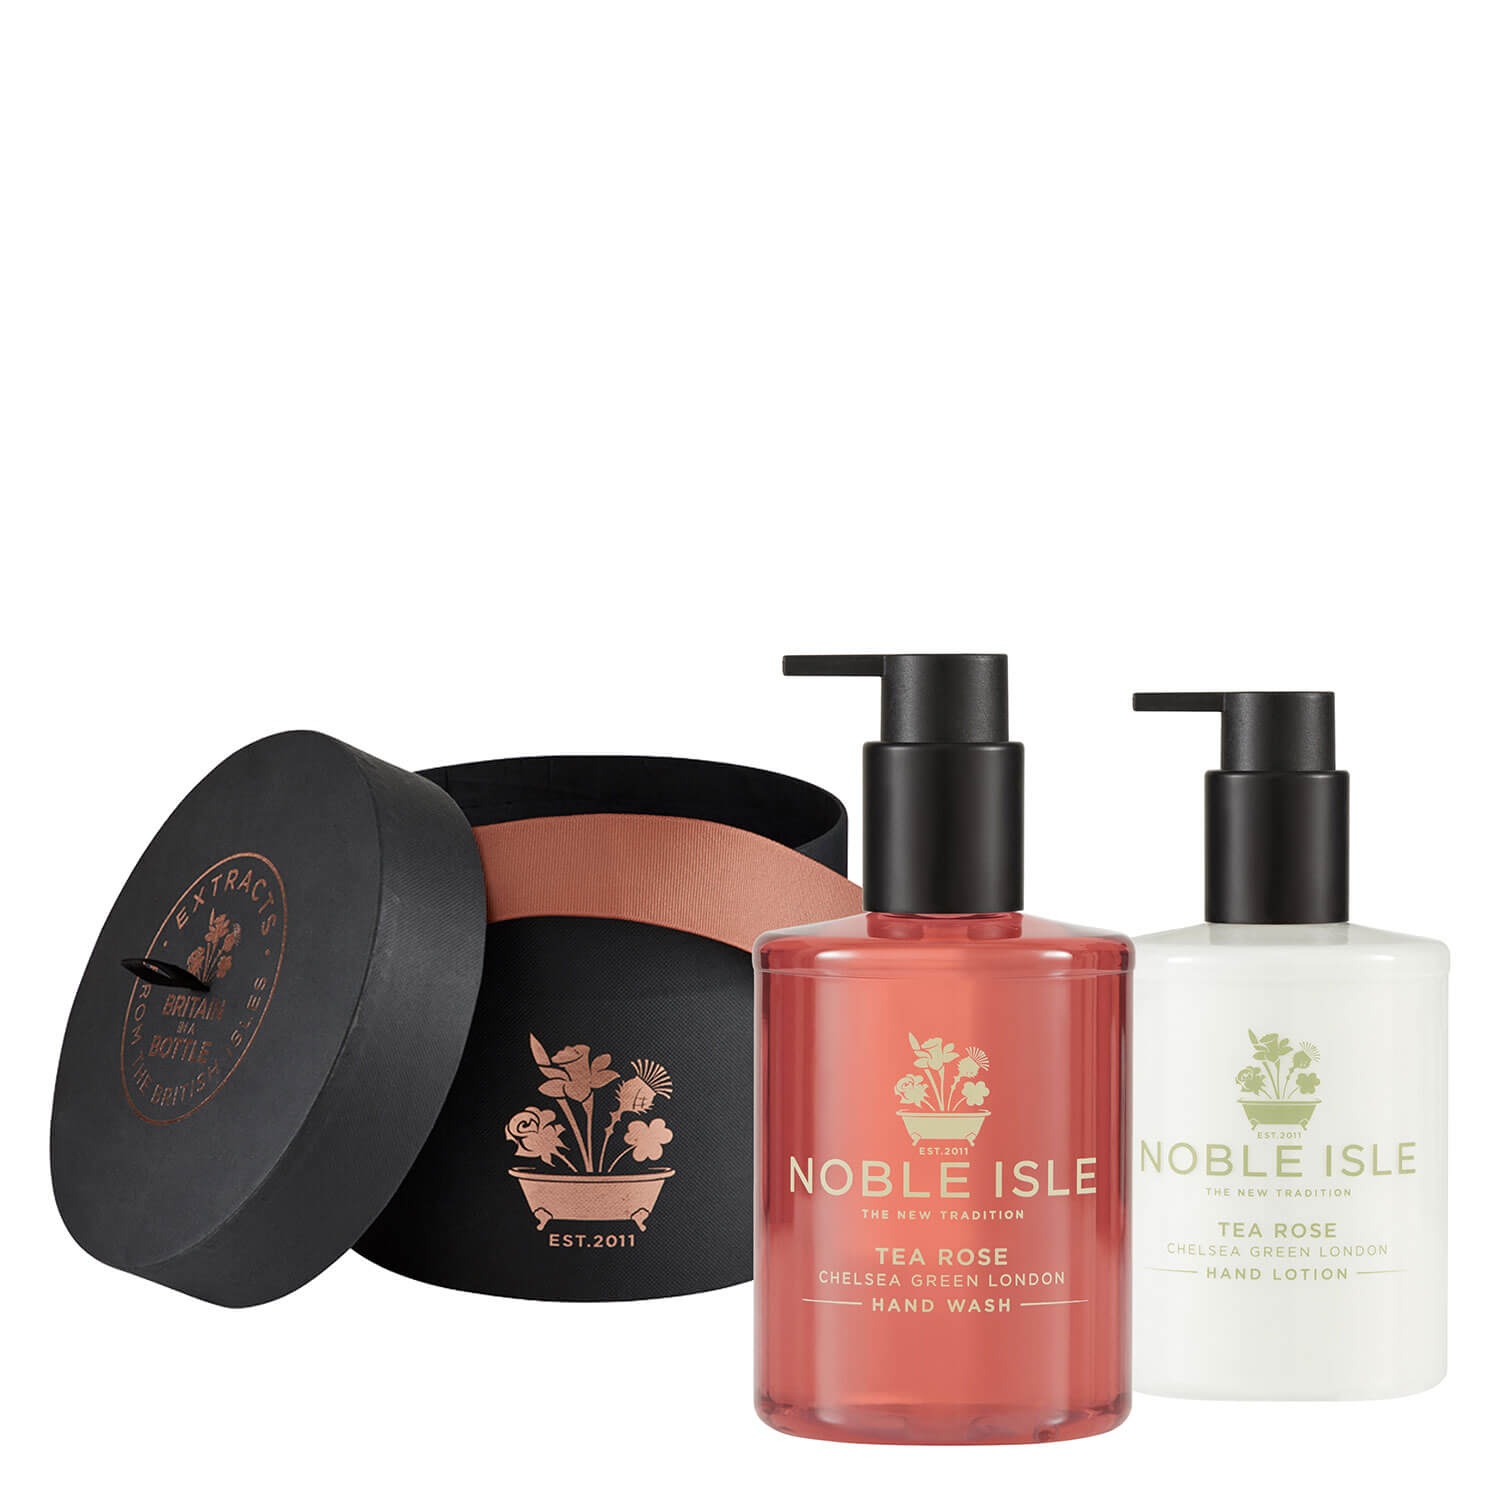 Noble Isle - Tea Rose Duo Gift Set